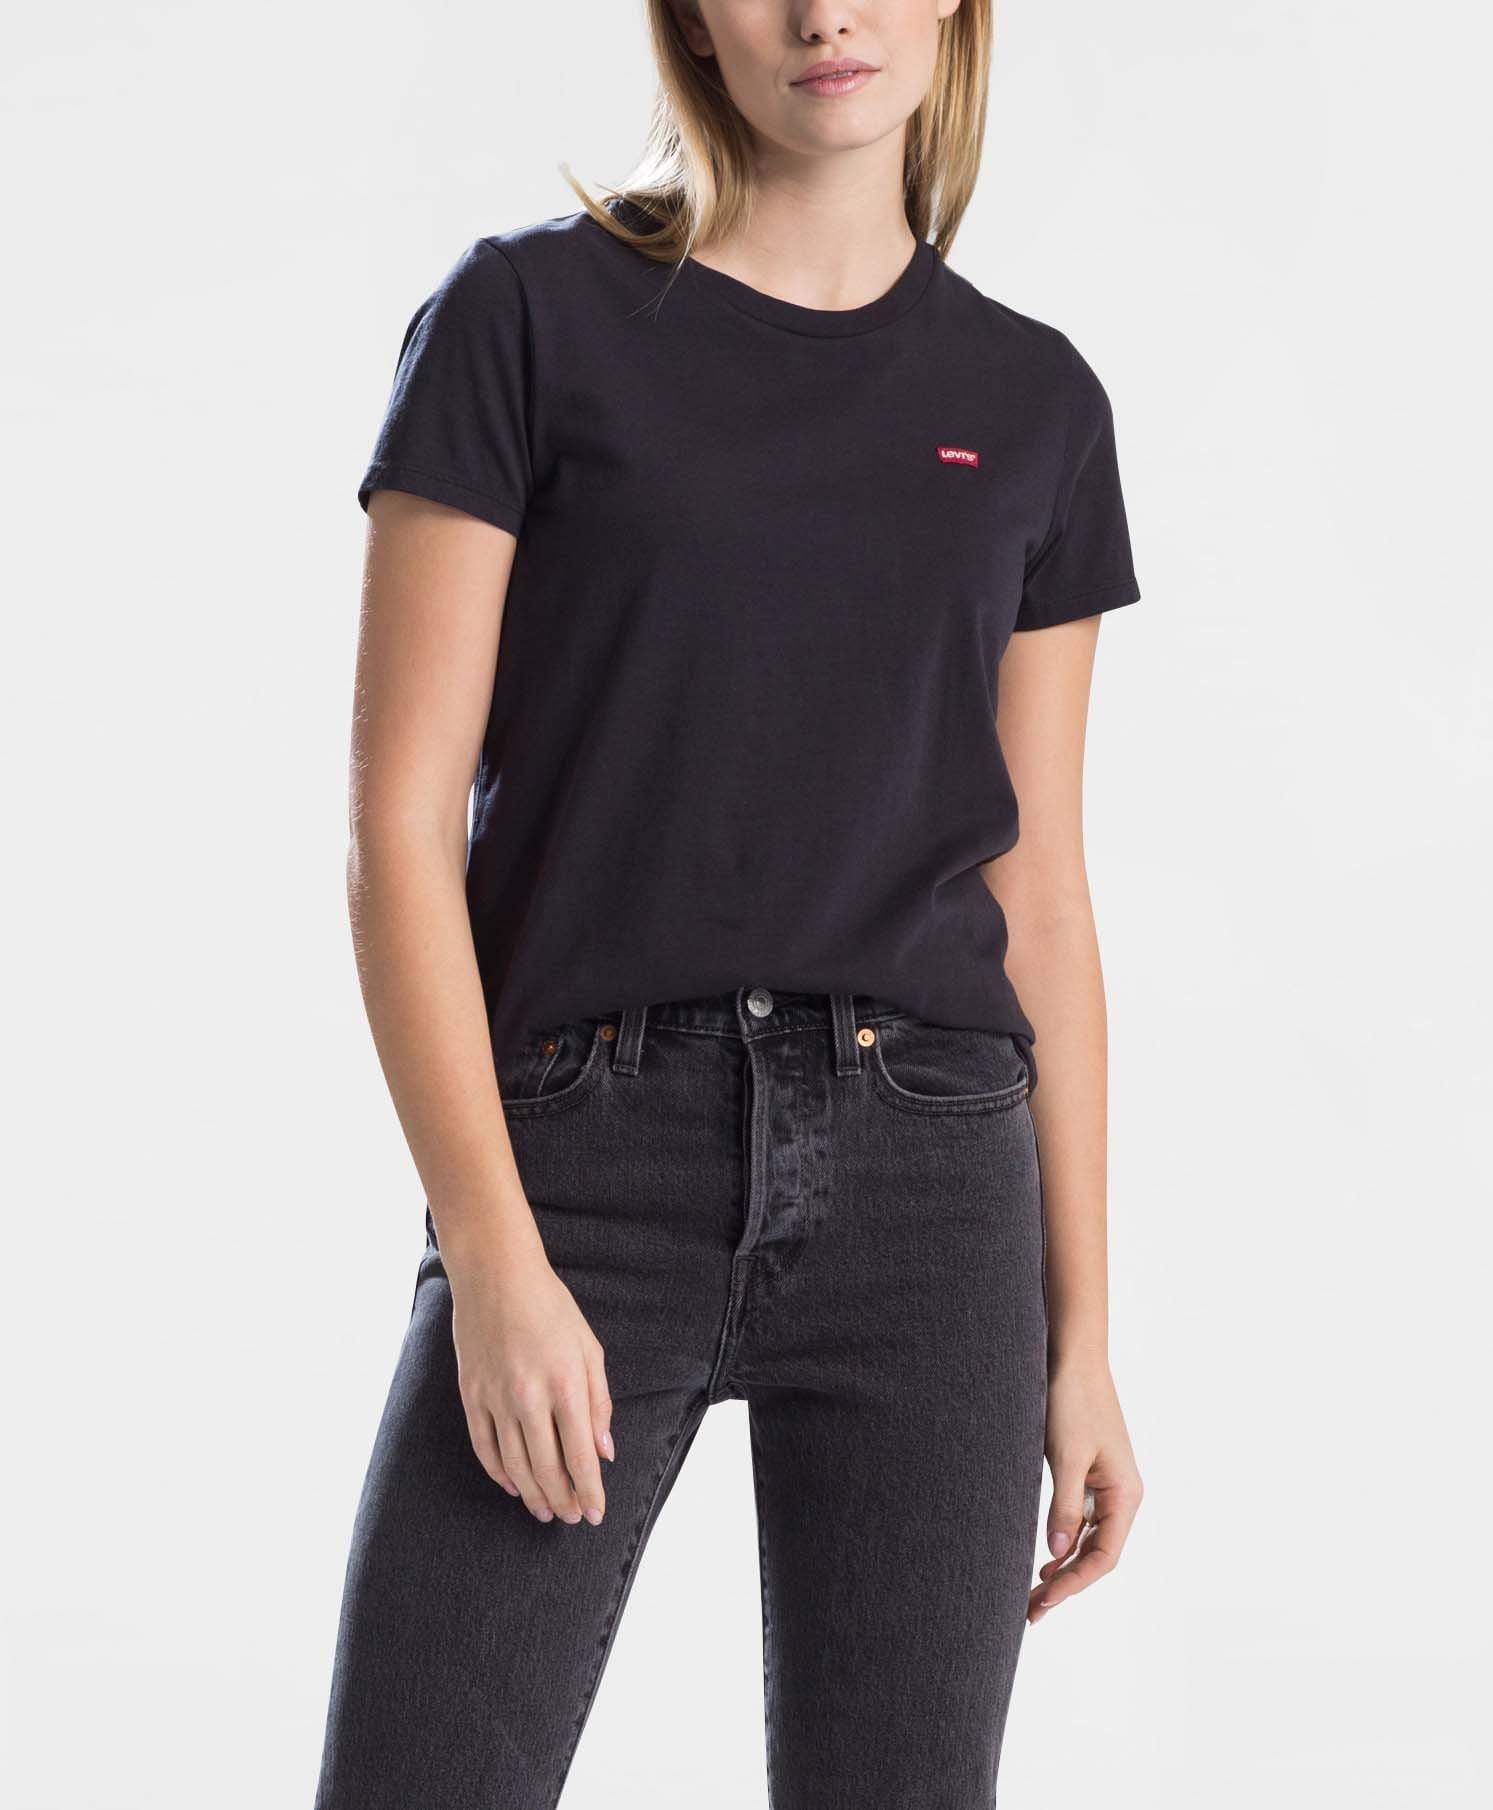 Levi's® Womens Perfect Tee - Small Batwing / Mineral Black XS 391850008XS 5400599010681 Levi's® T Shirts